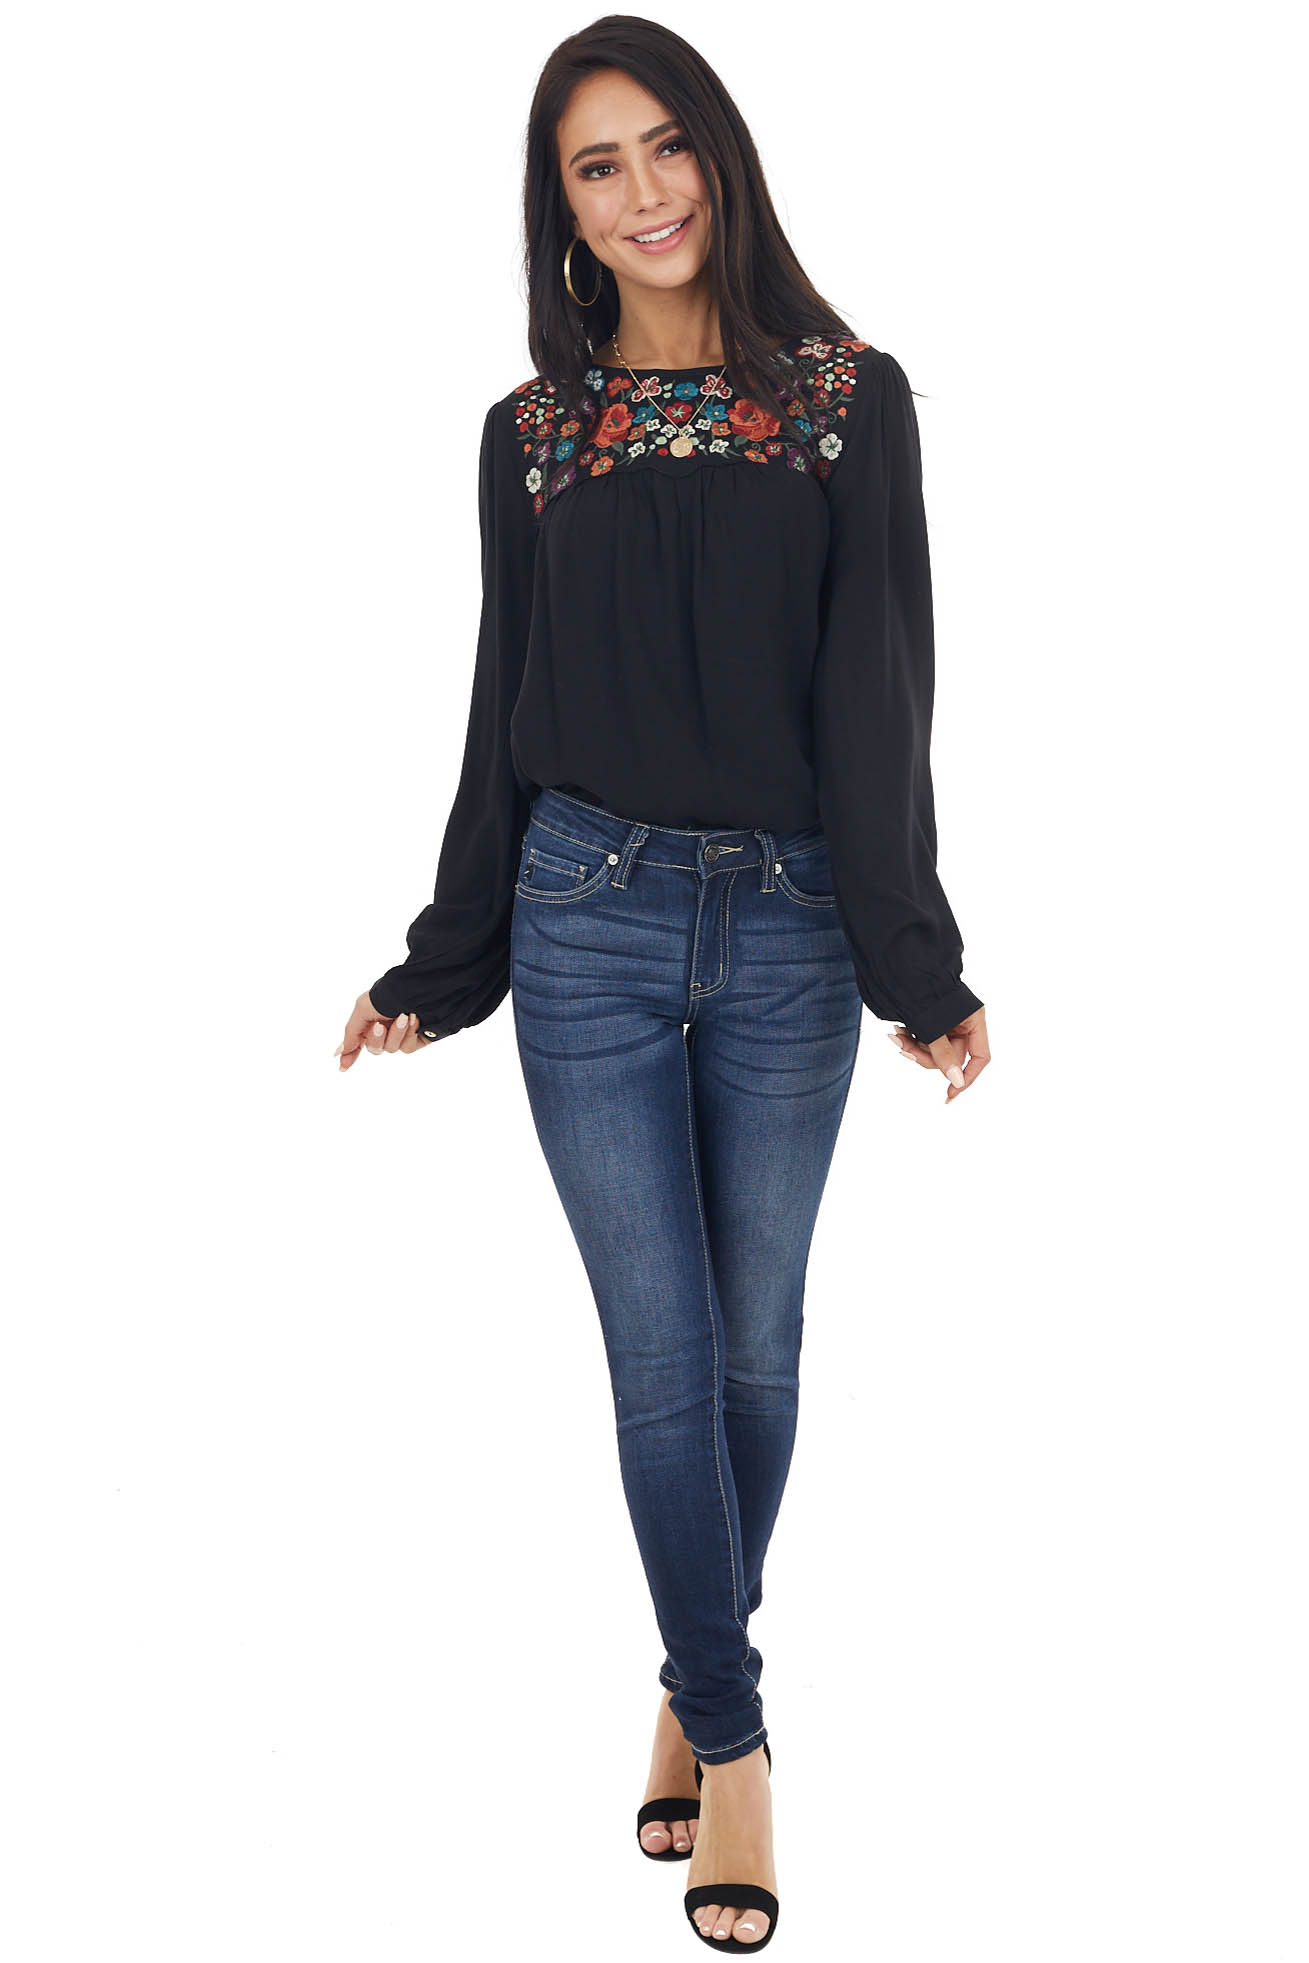 Black Long Sleeve Flowy Top with Floral Embroidery